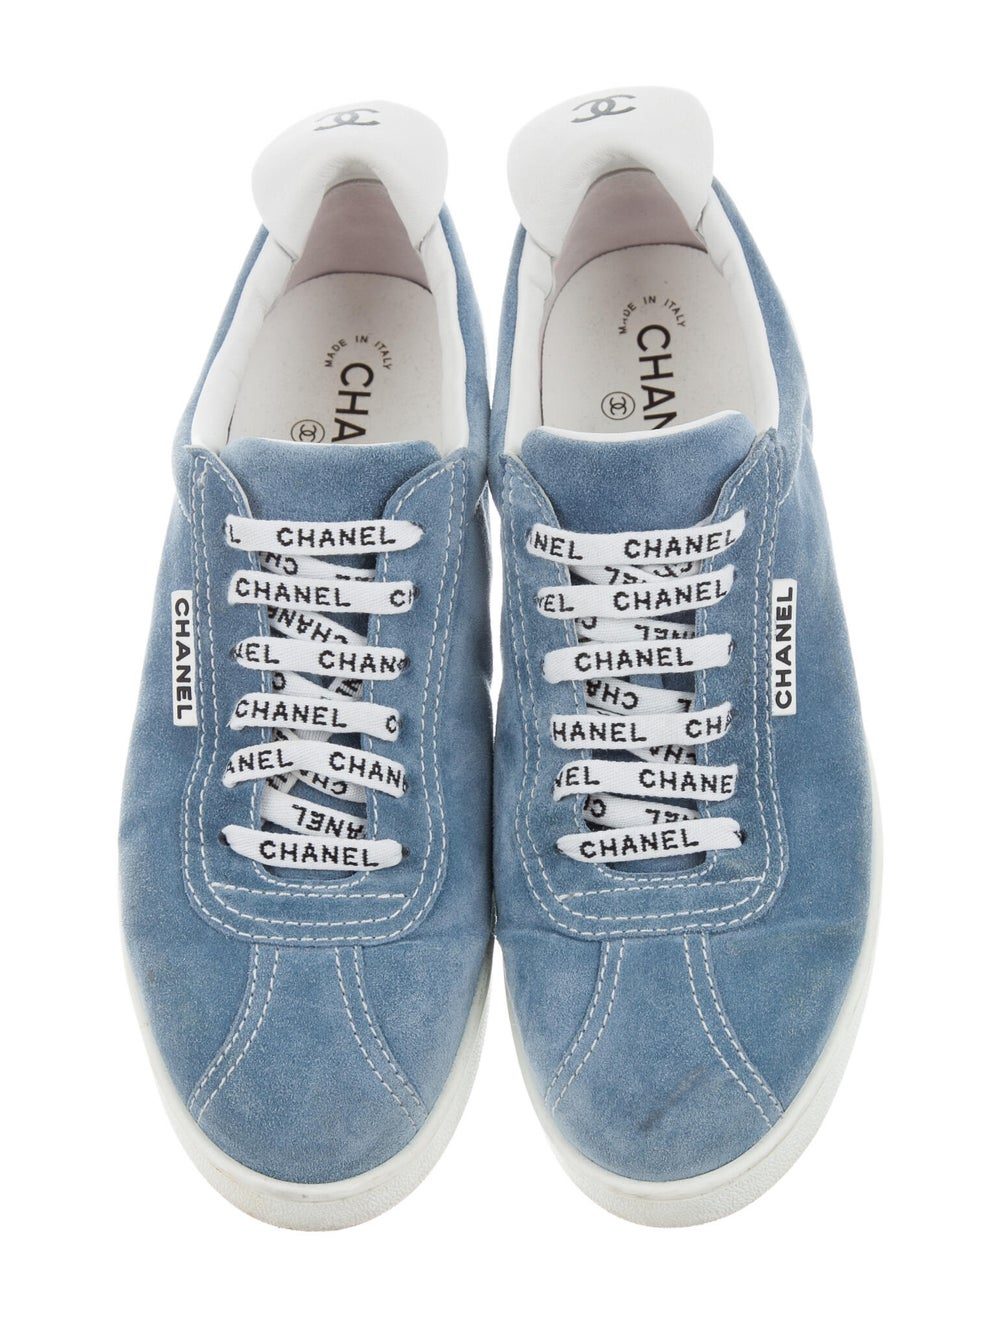 Chanel Logo Suede Sneakers Sneakers Blue - image 3